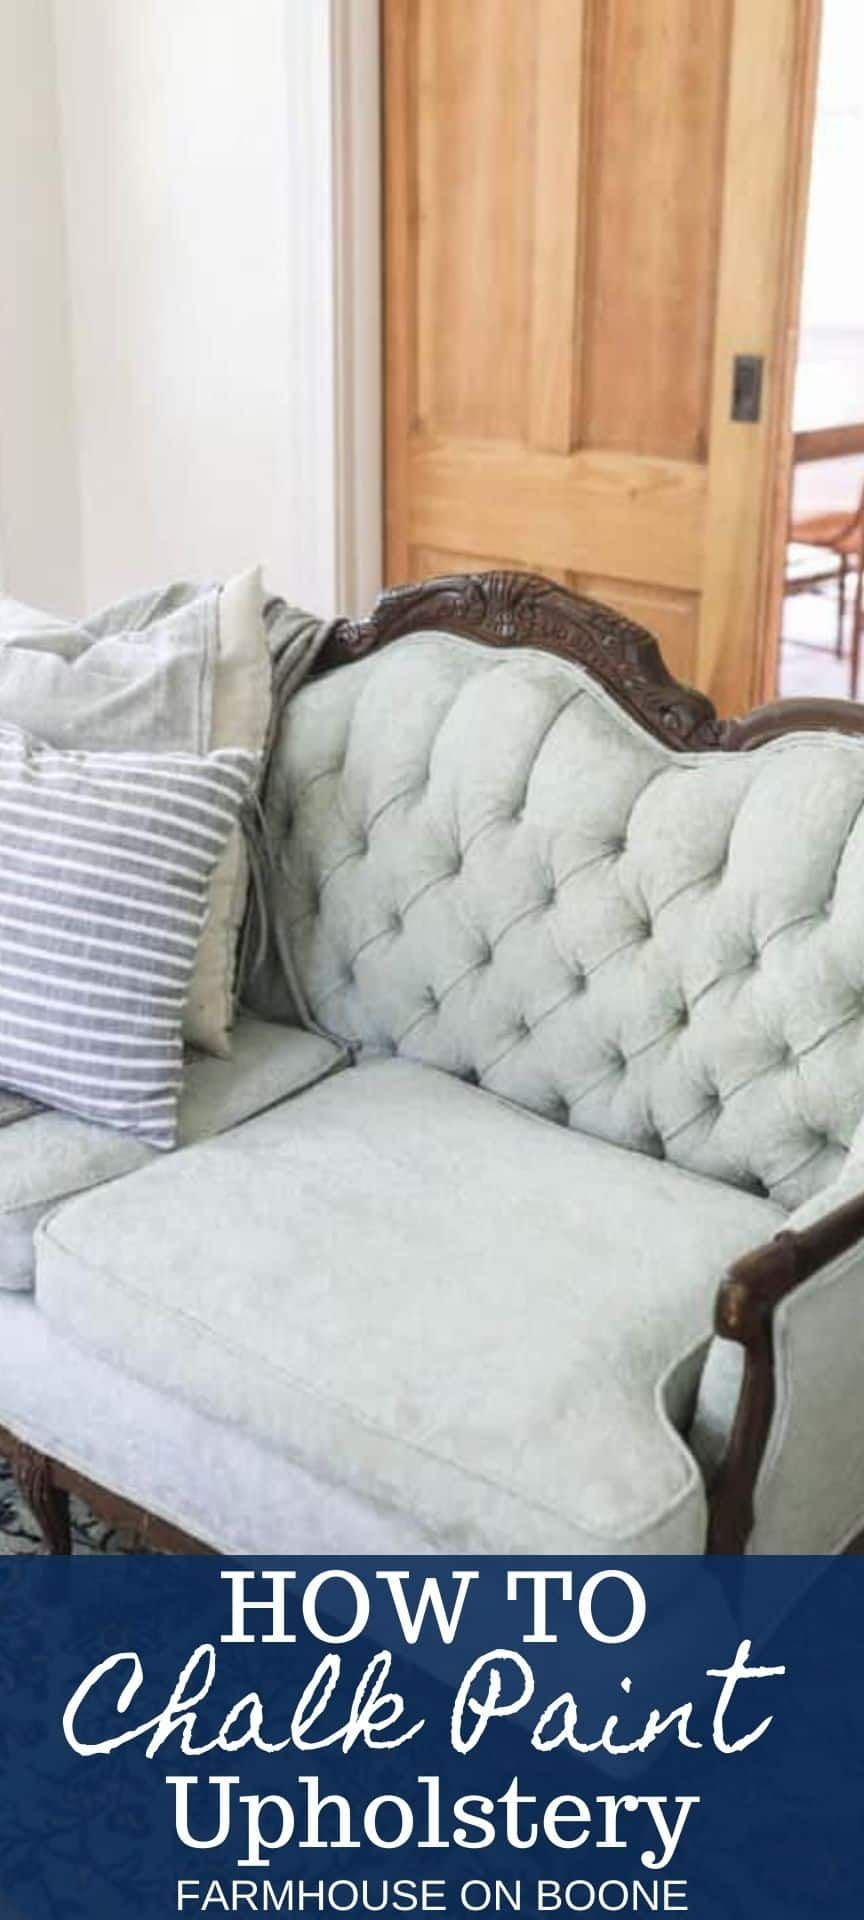 Learn how to easily transform outdated furniture by chalk painting upholstery. See how I updated an antique sofa and chair set with some chalk paint to bring it to life again. #farmhouseonboone #chalkpaint #chalkpaintupholstery